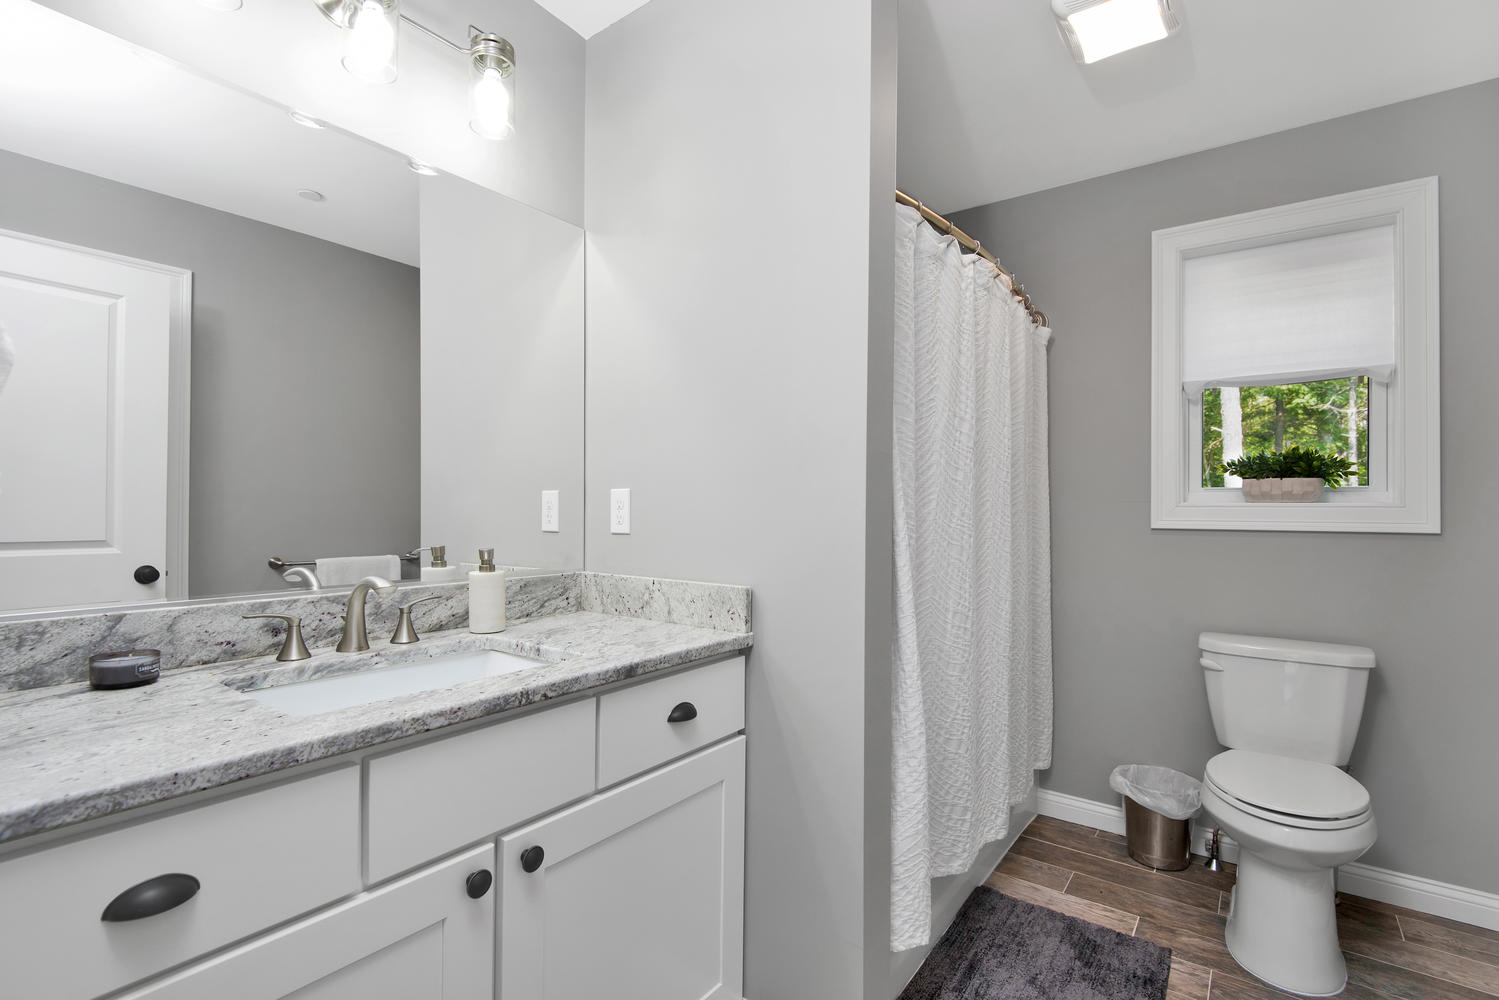 29 Laura Lane Gorham ME 04038-large-020-027-Bathroom-1499x1000-72dpi_1.jpg